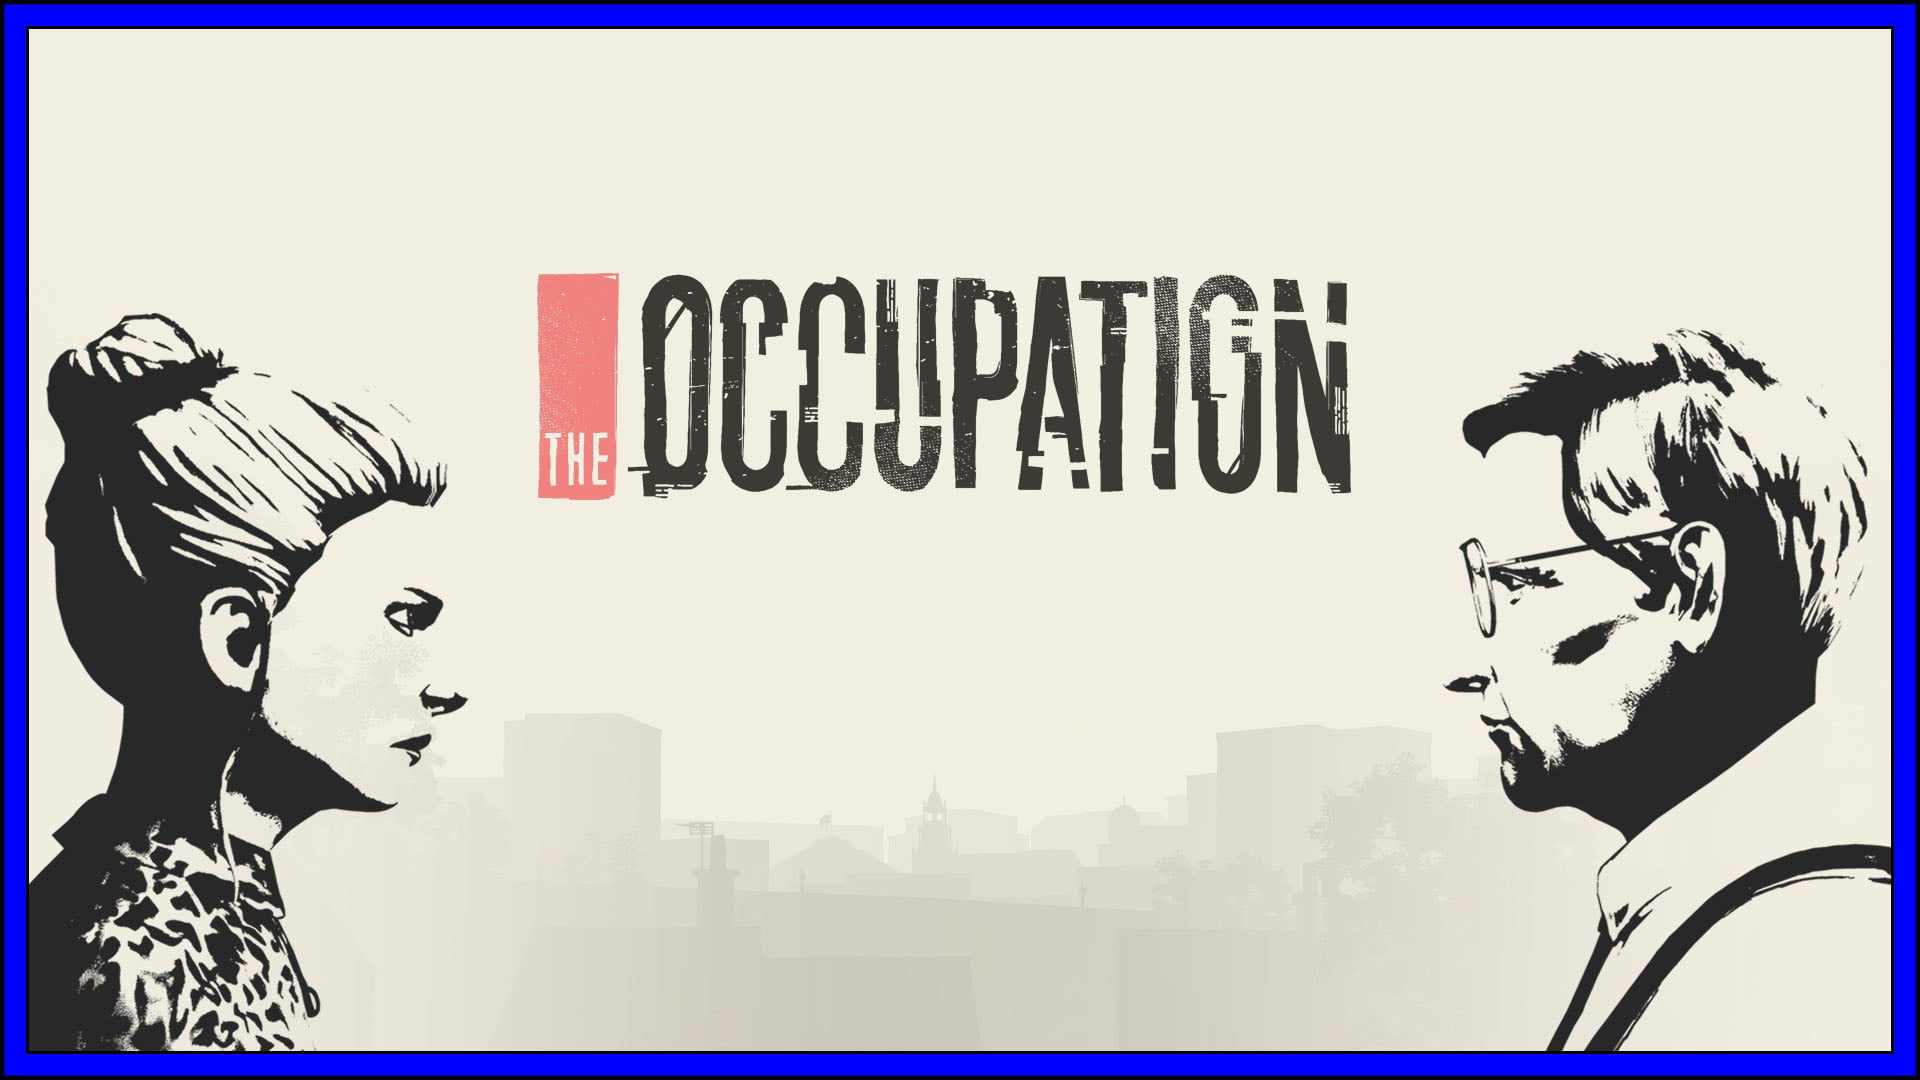 The Occupation Fi3